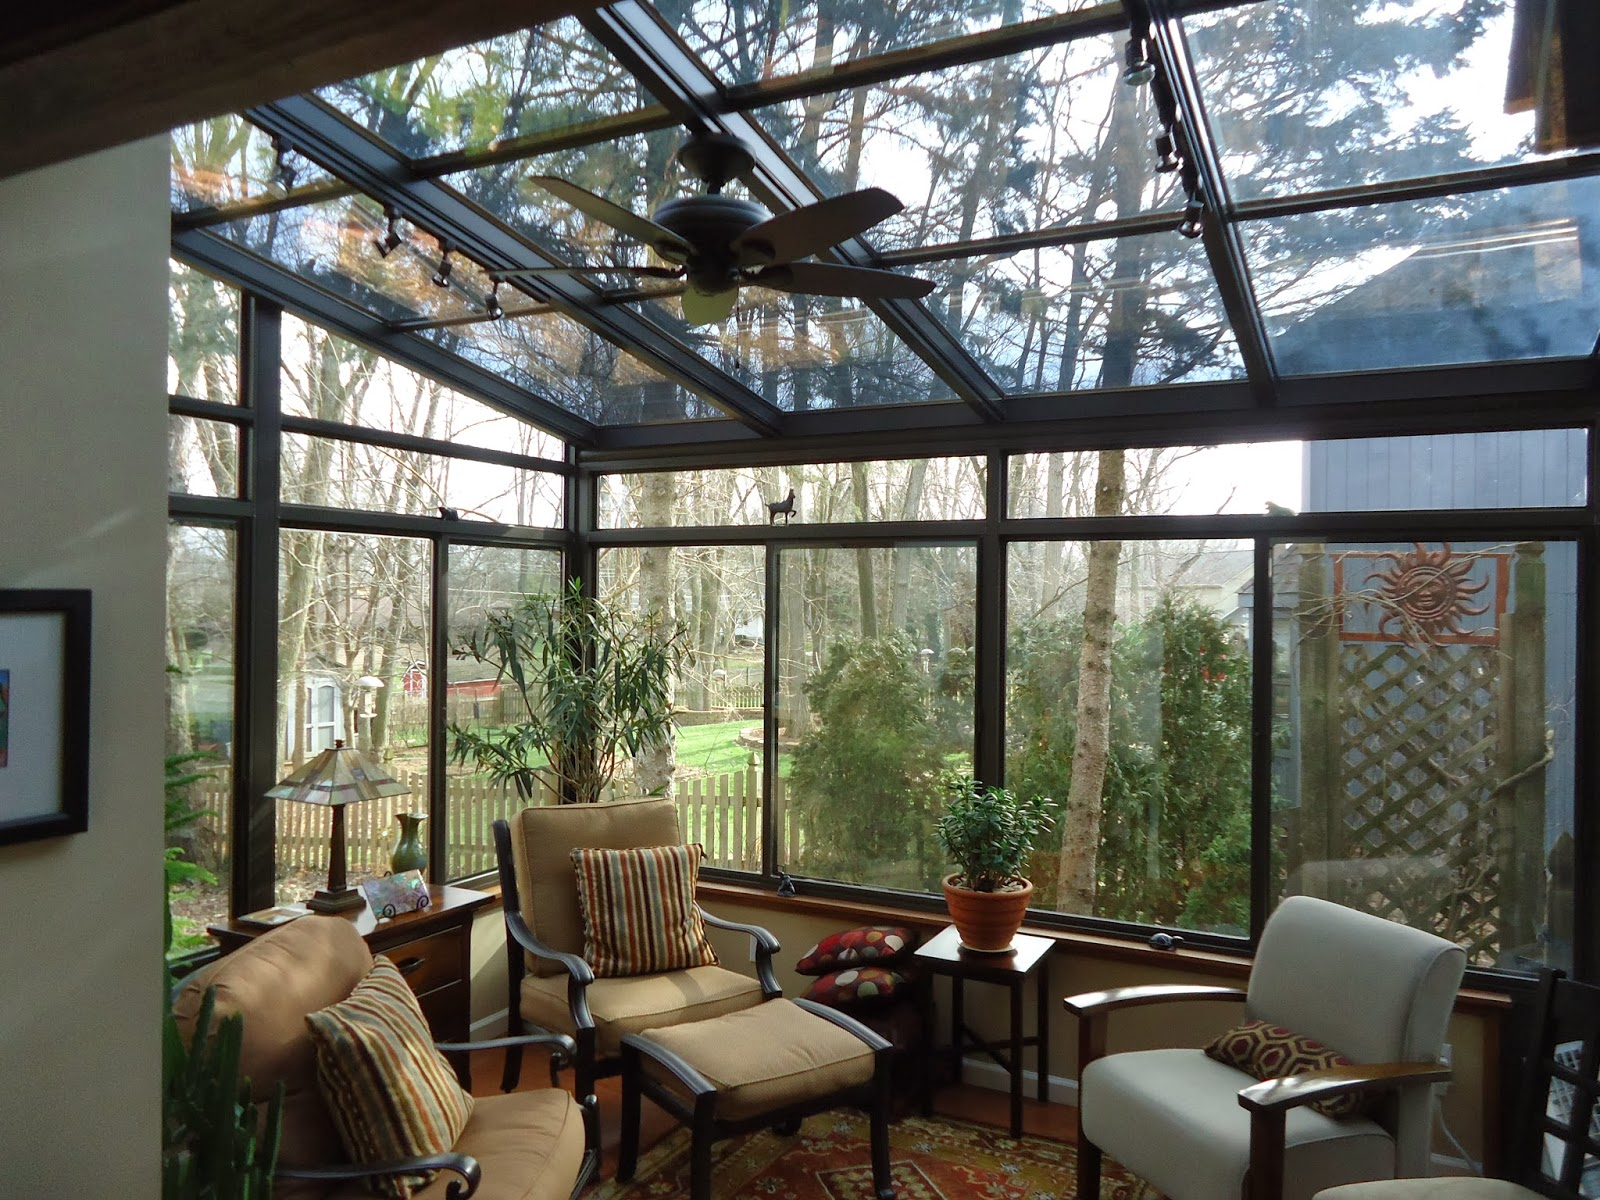 Dallas beewindow four seasons sunroom addition all glass for House sunroom